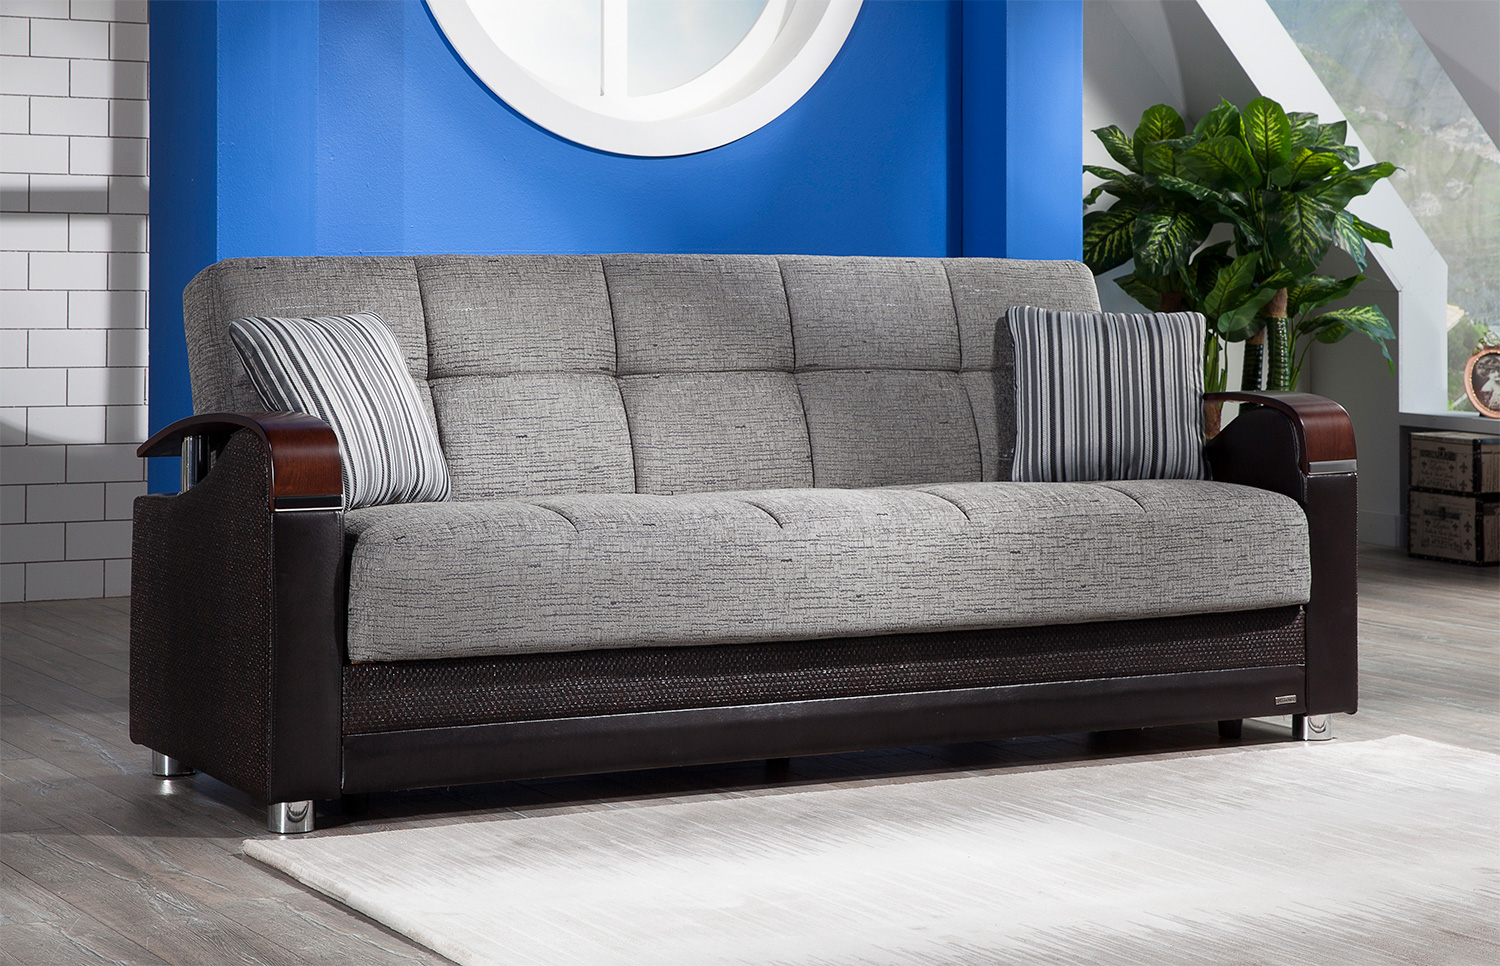 Luna Fulya Gray Convertible Sofa Bed With Storage Marjen Of Chicago Chicago Discount Furniture